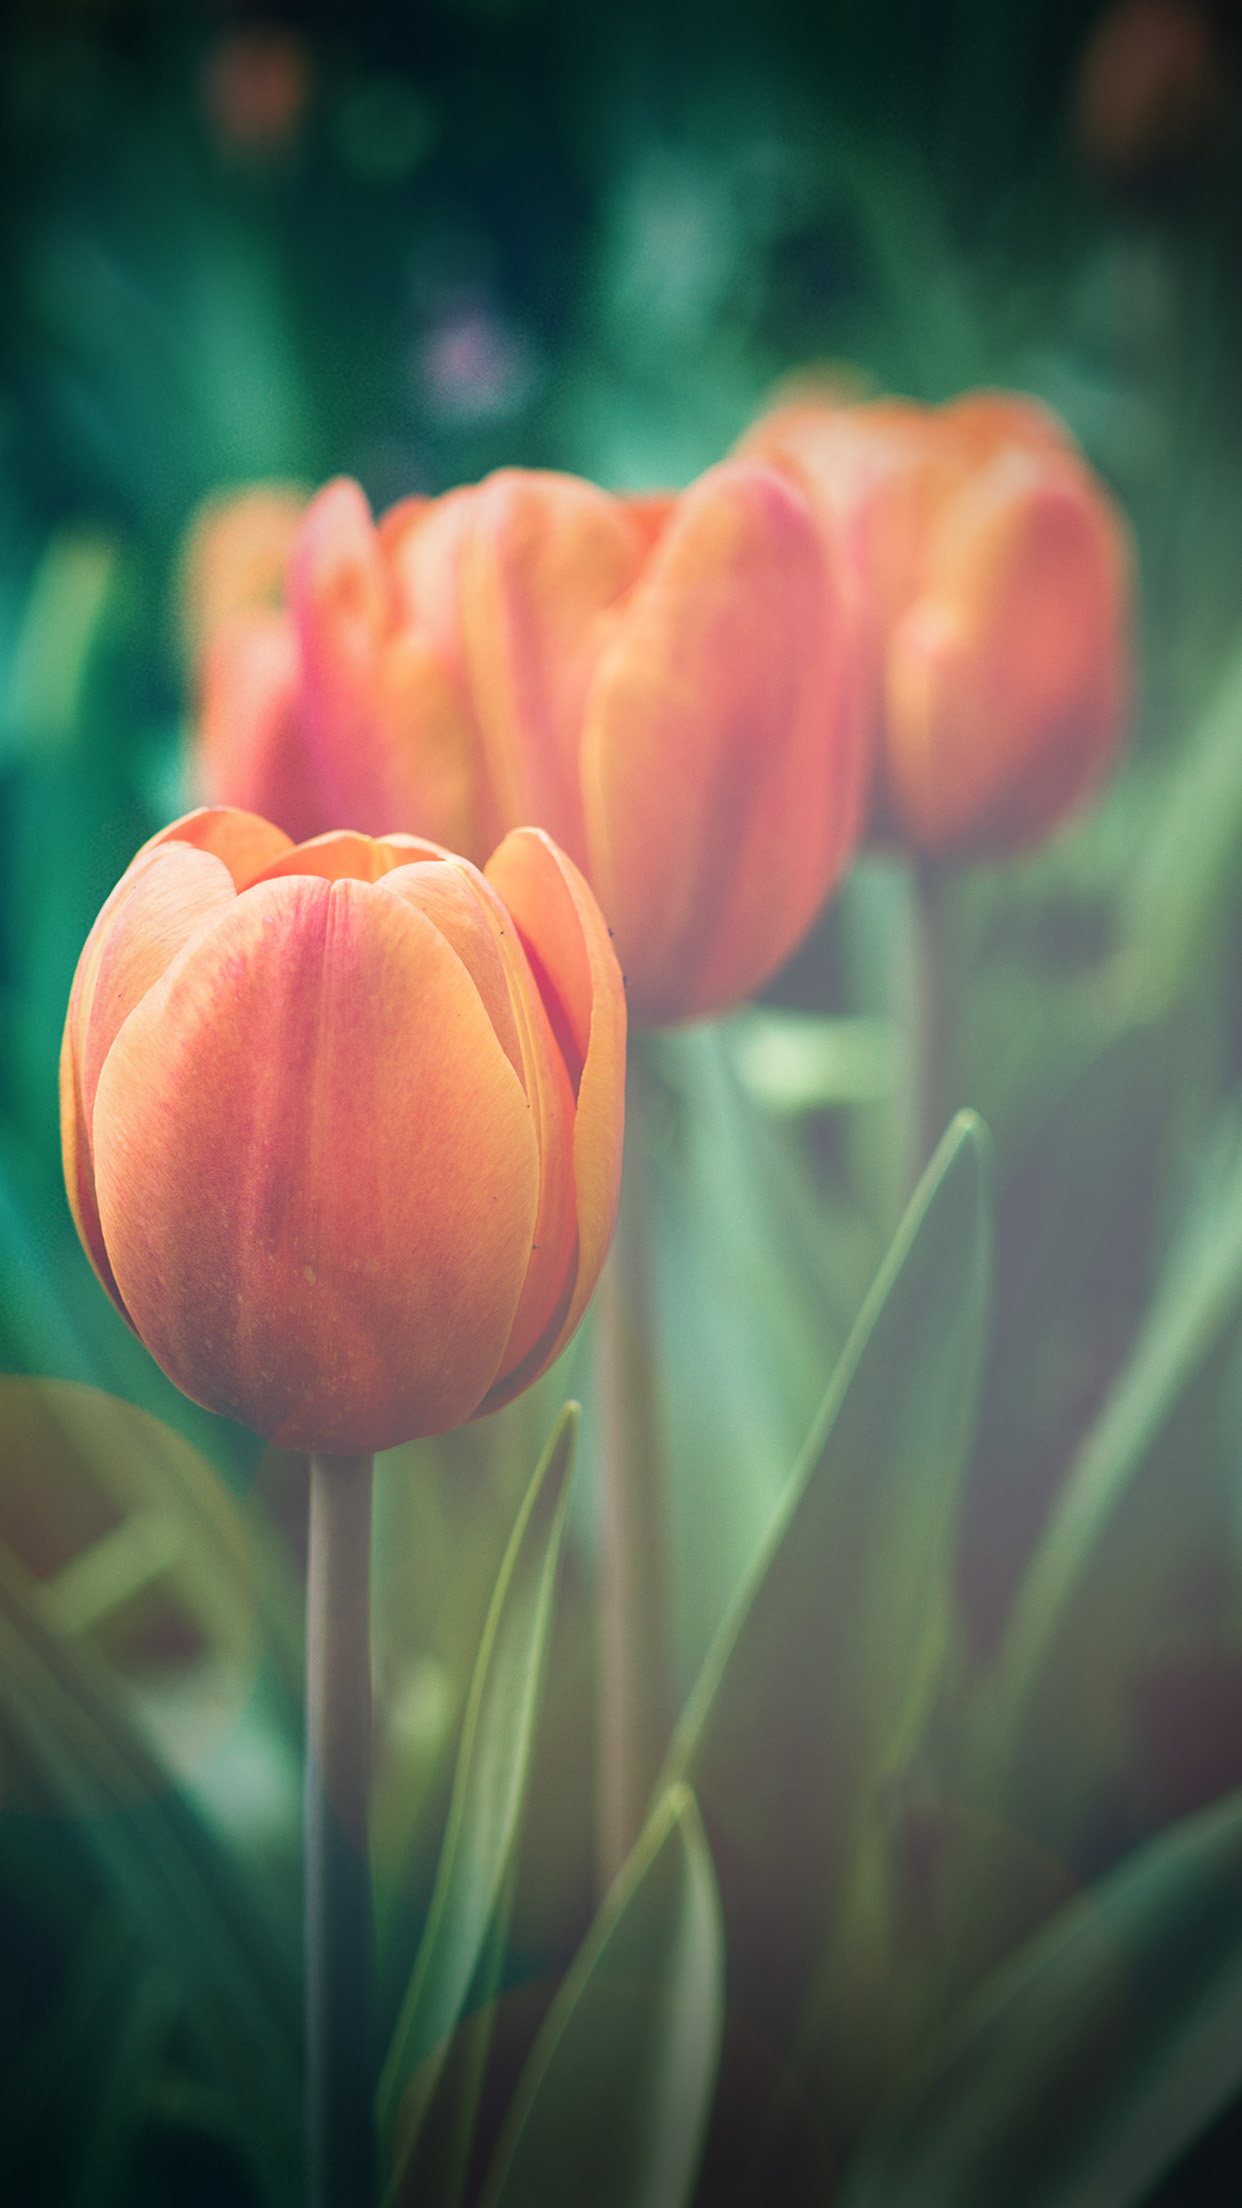 Flower Tulip Green Vignette Love Nature Android Wallpaper